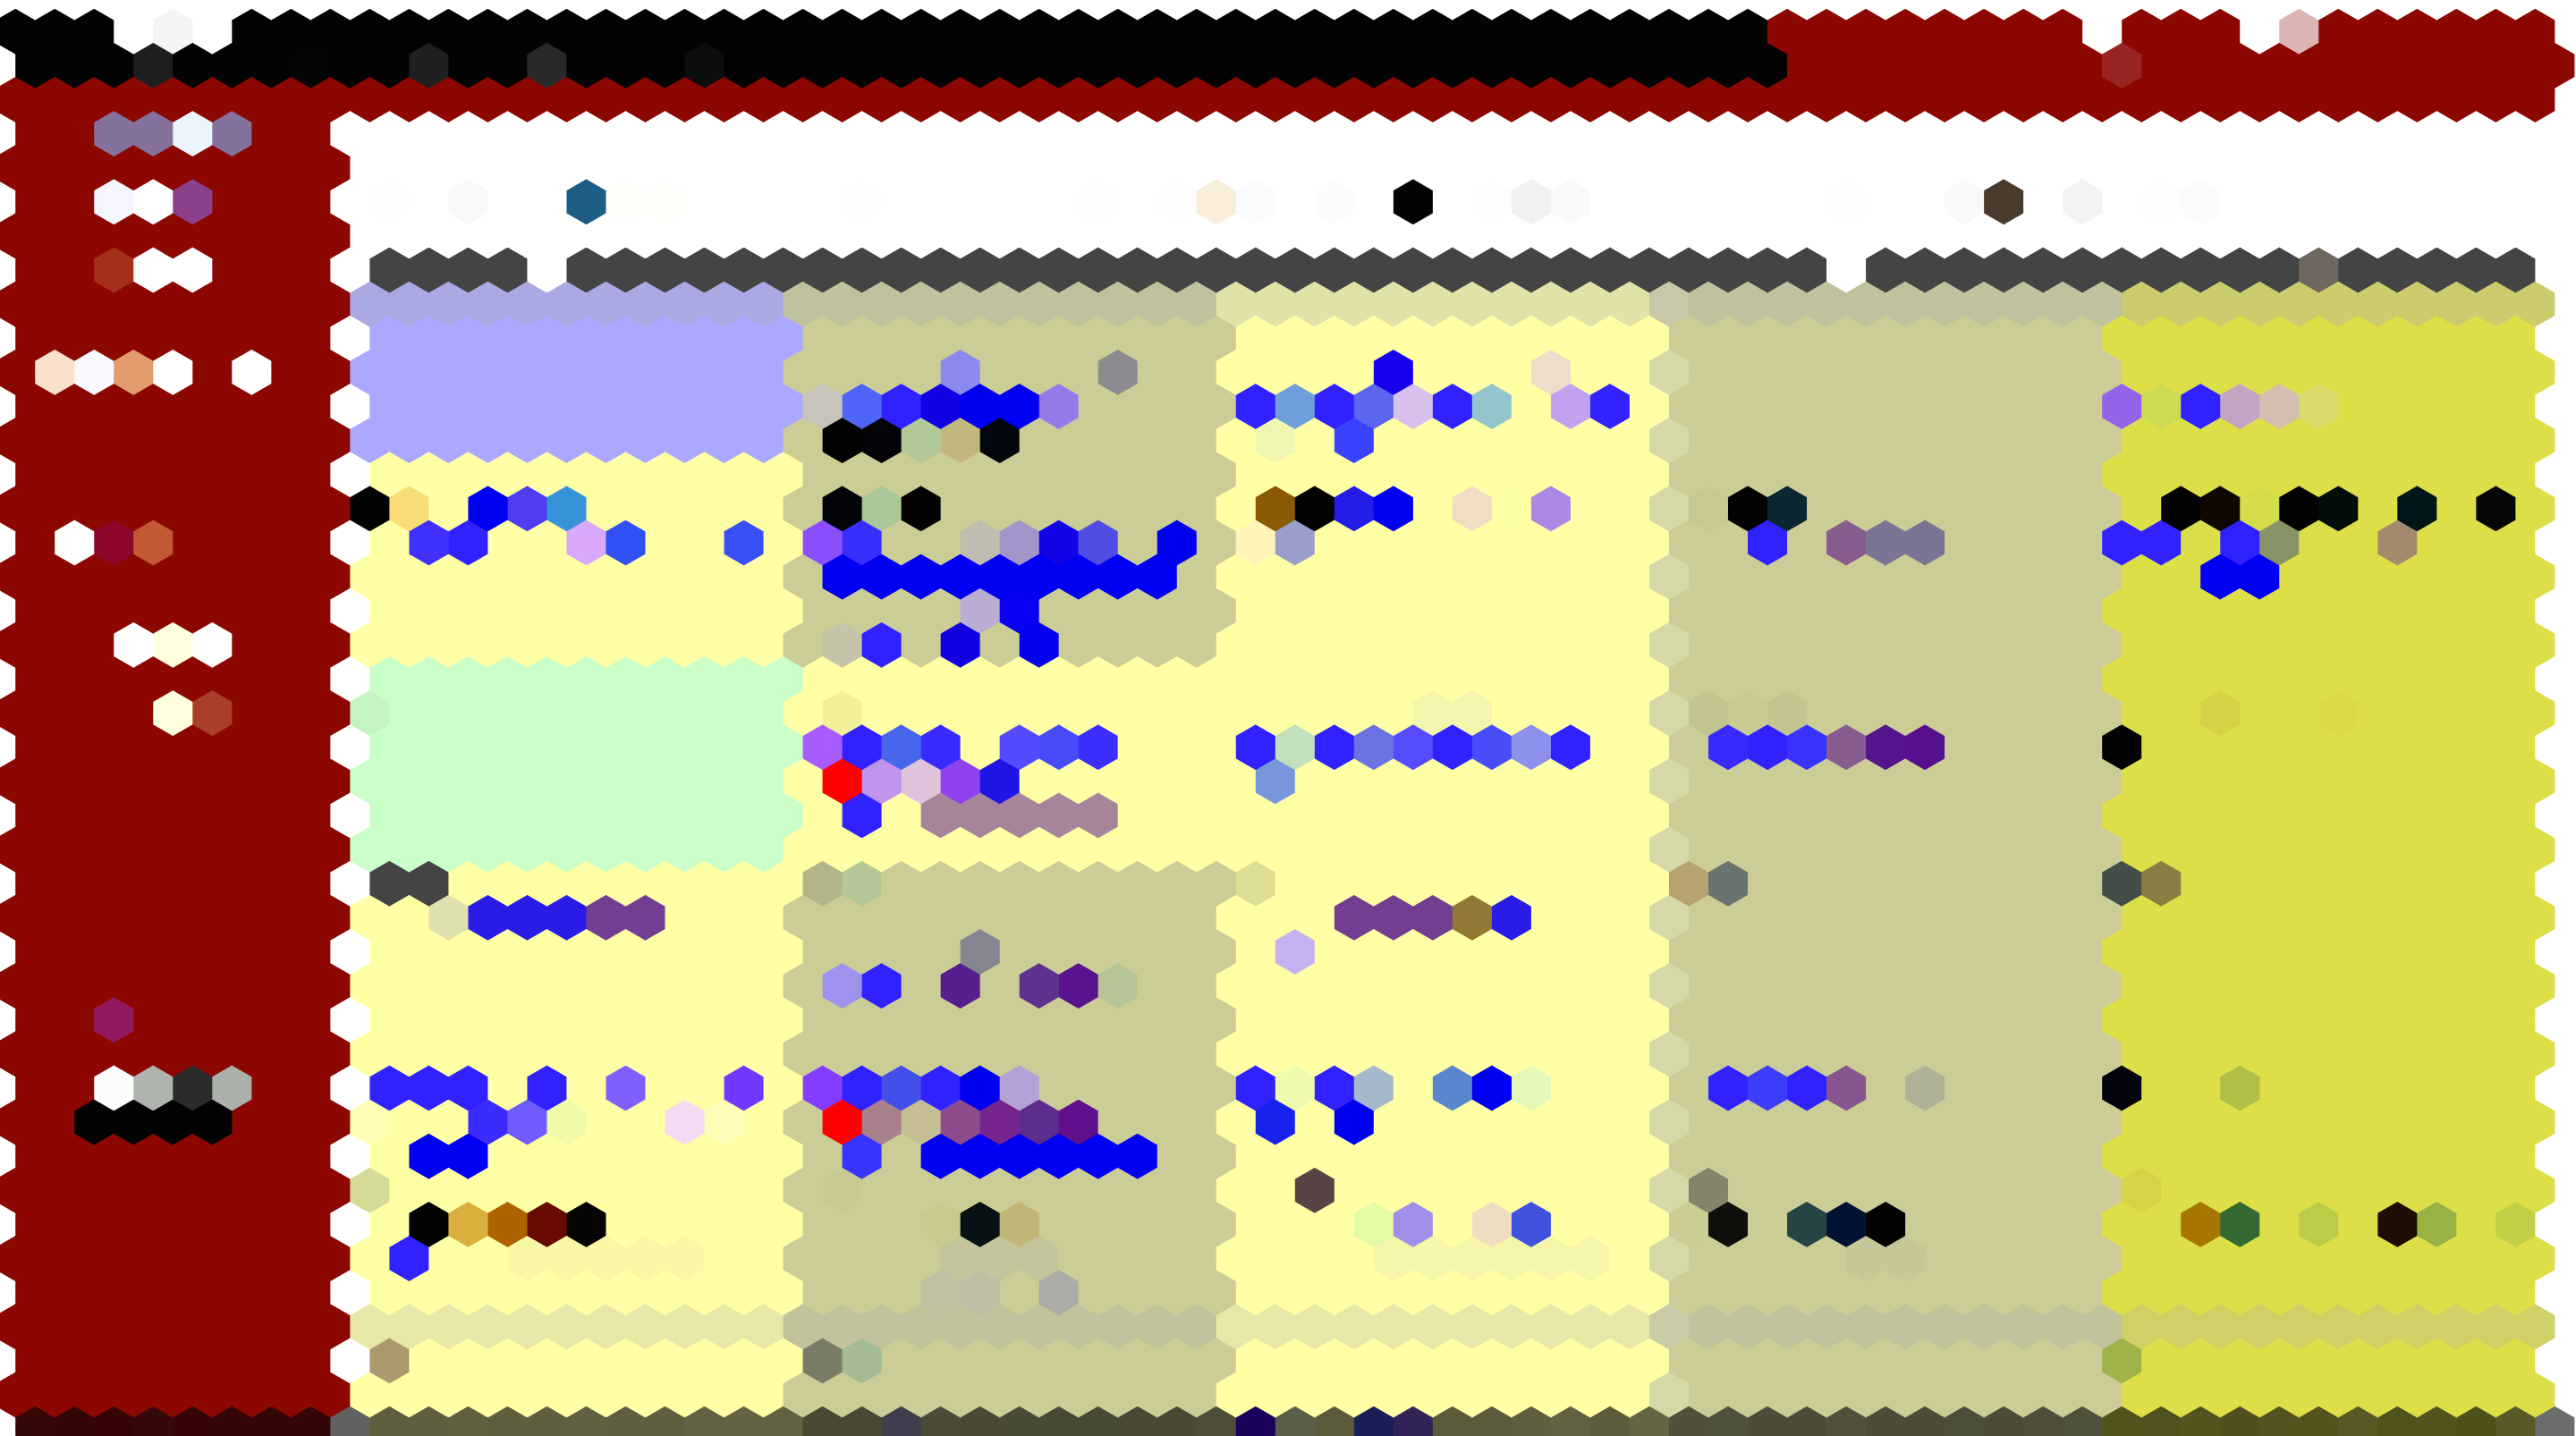 a pixelated screenshot of the page I stared at the most